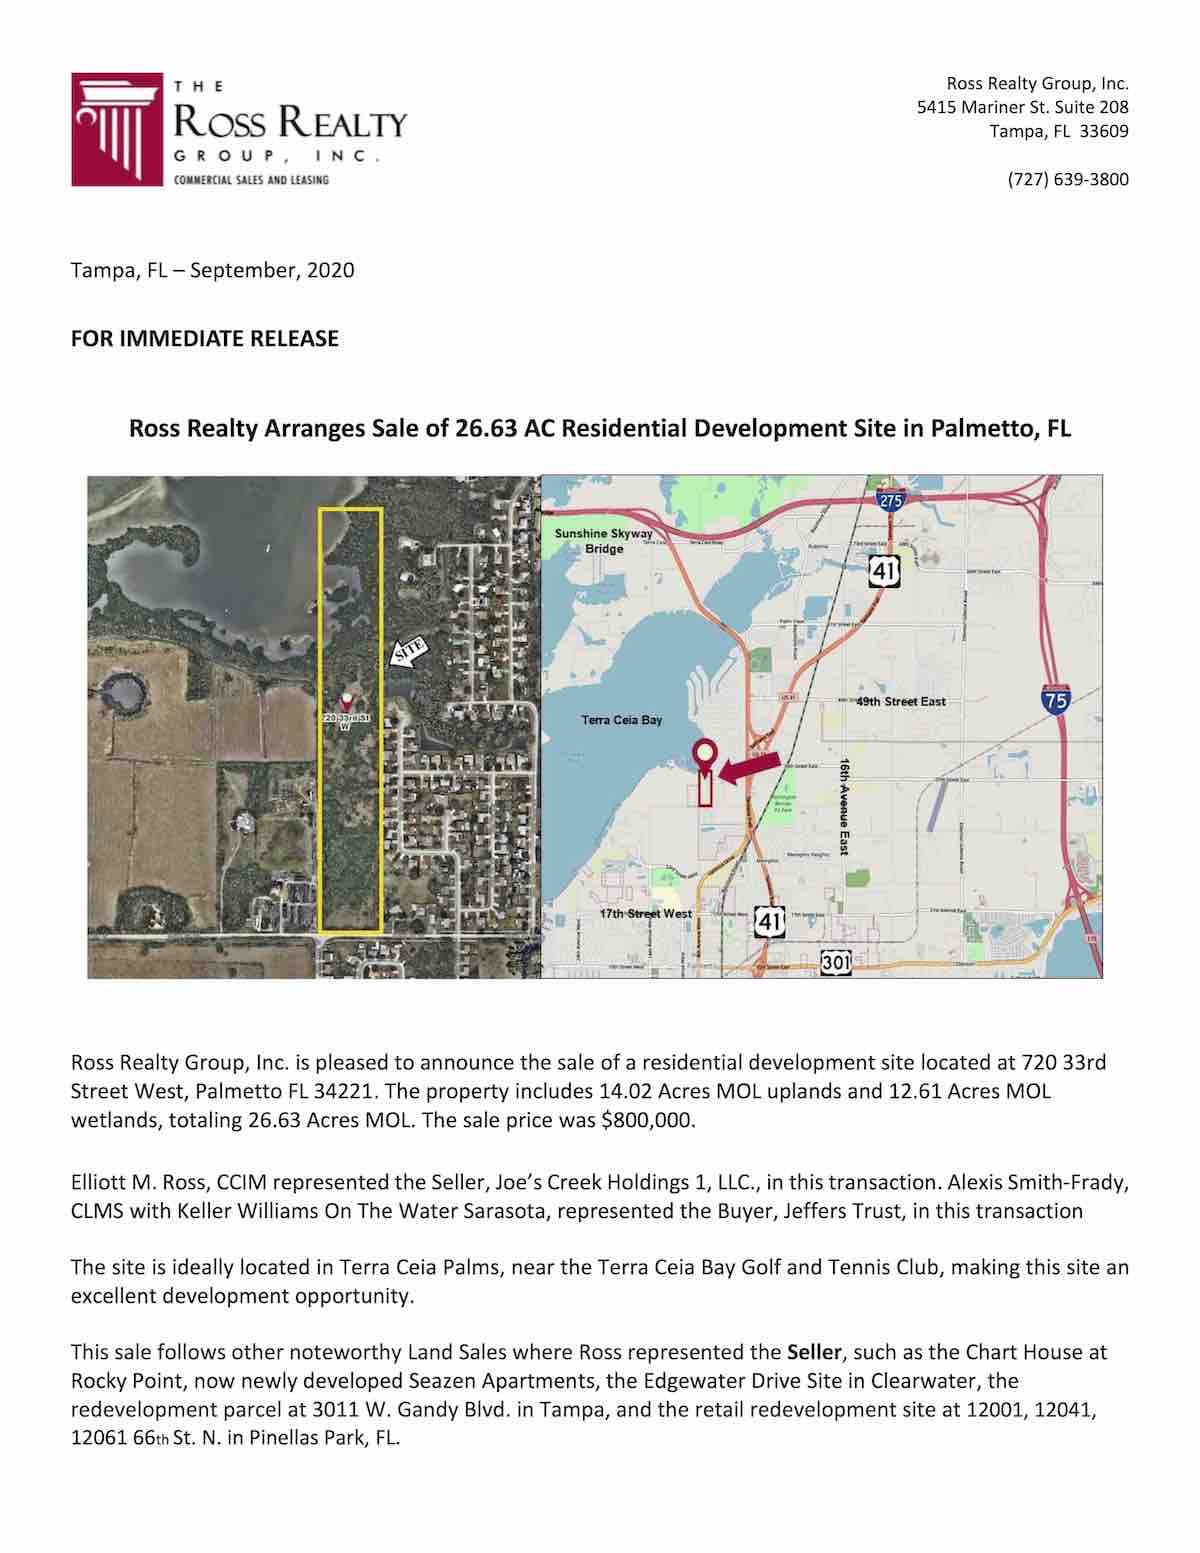 Ross Realty Arranges Sale of 26.63 AC Residential Development Site in Palmetto, FL